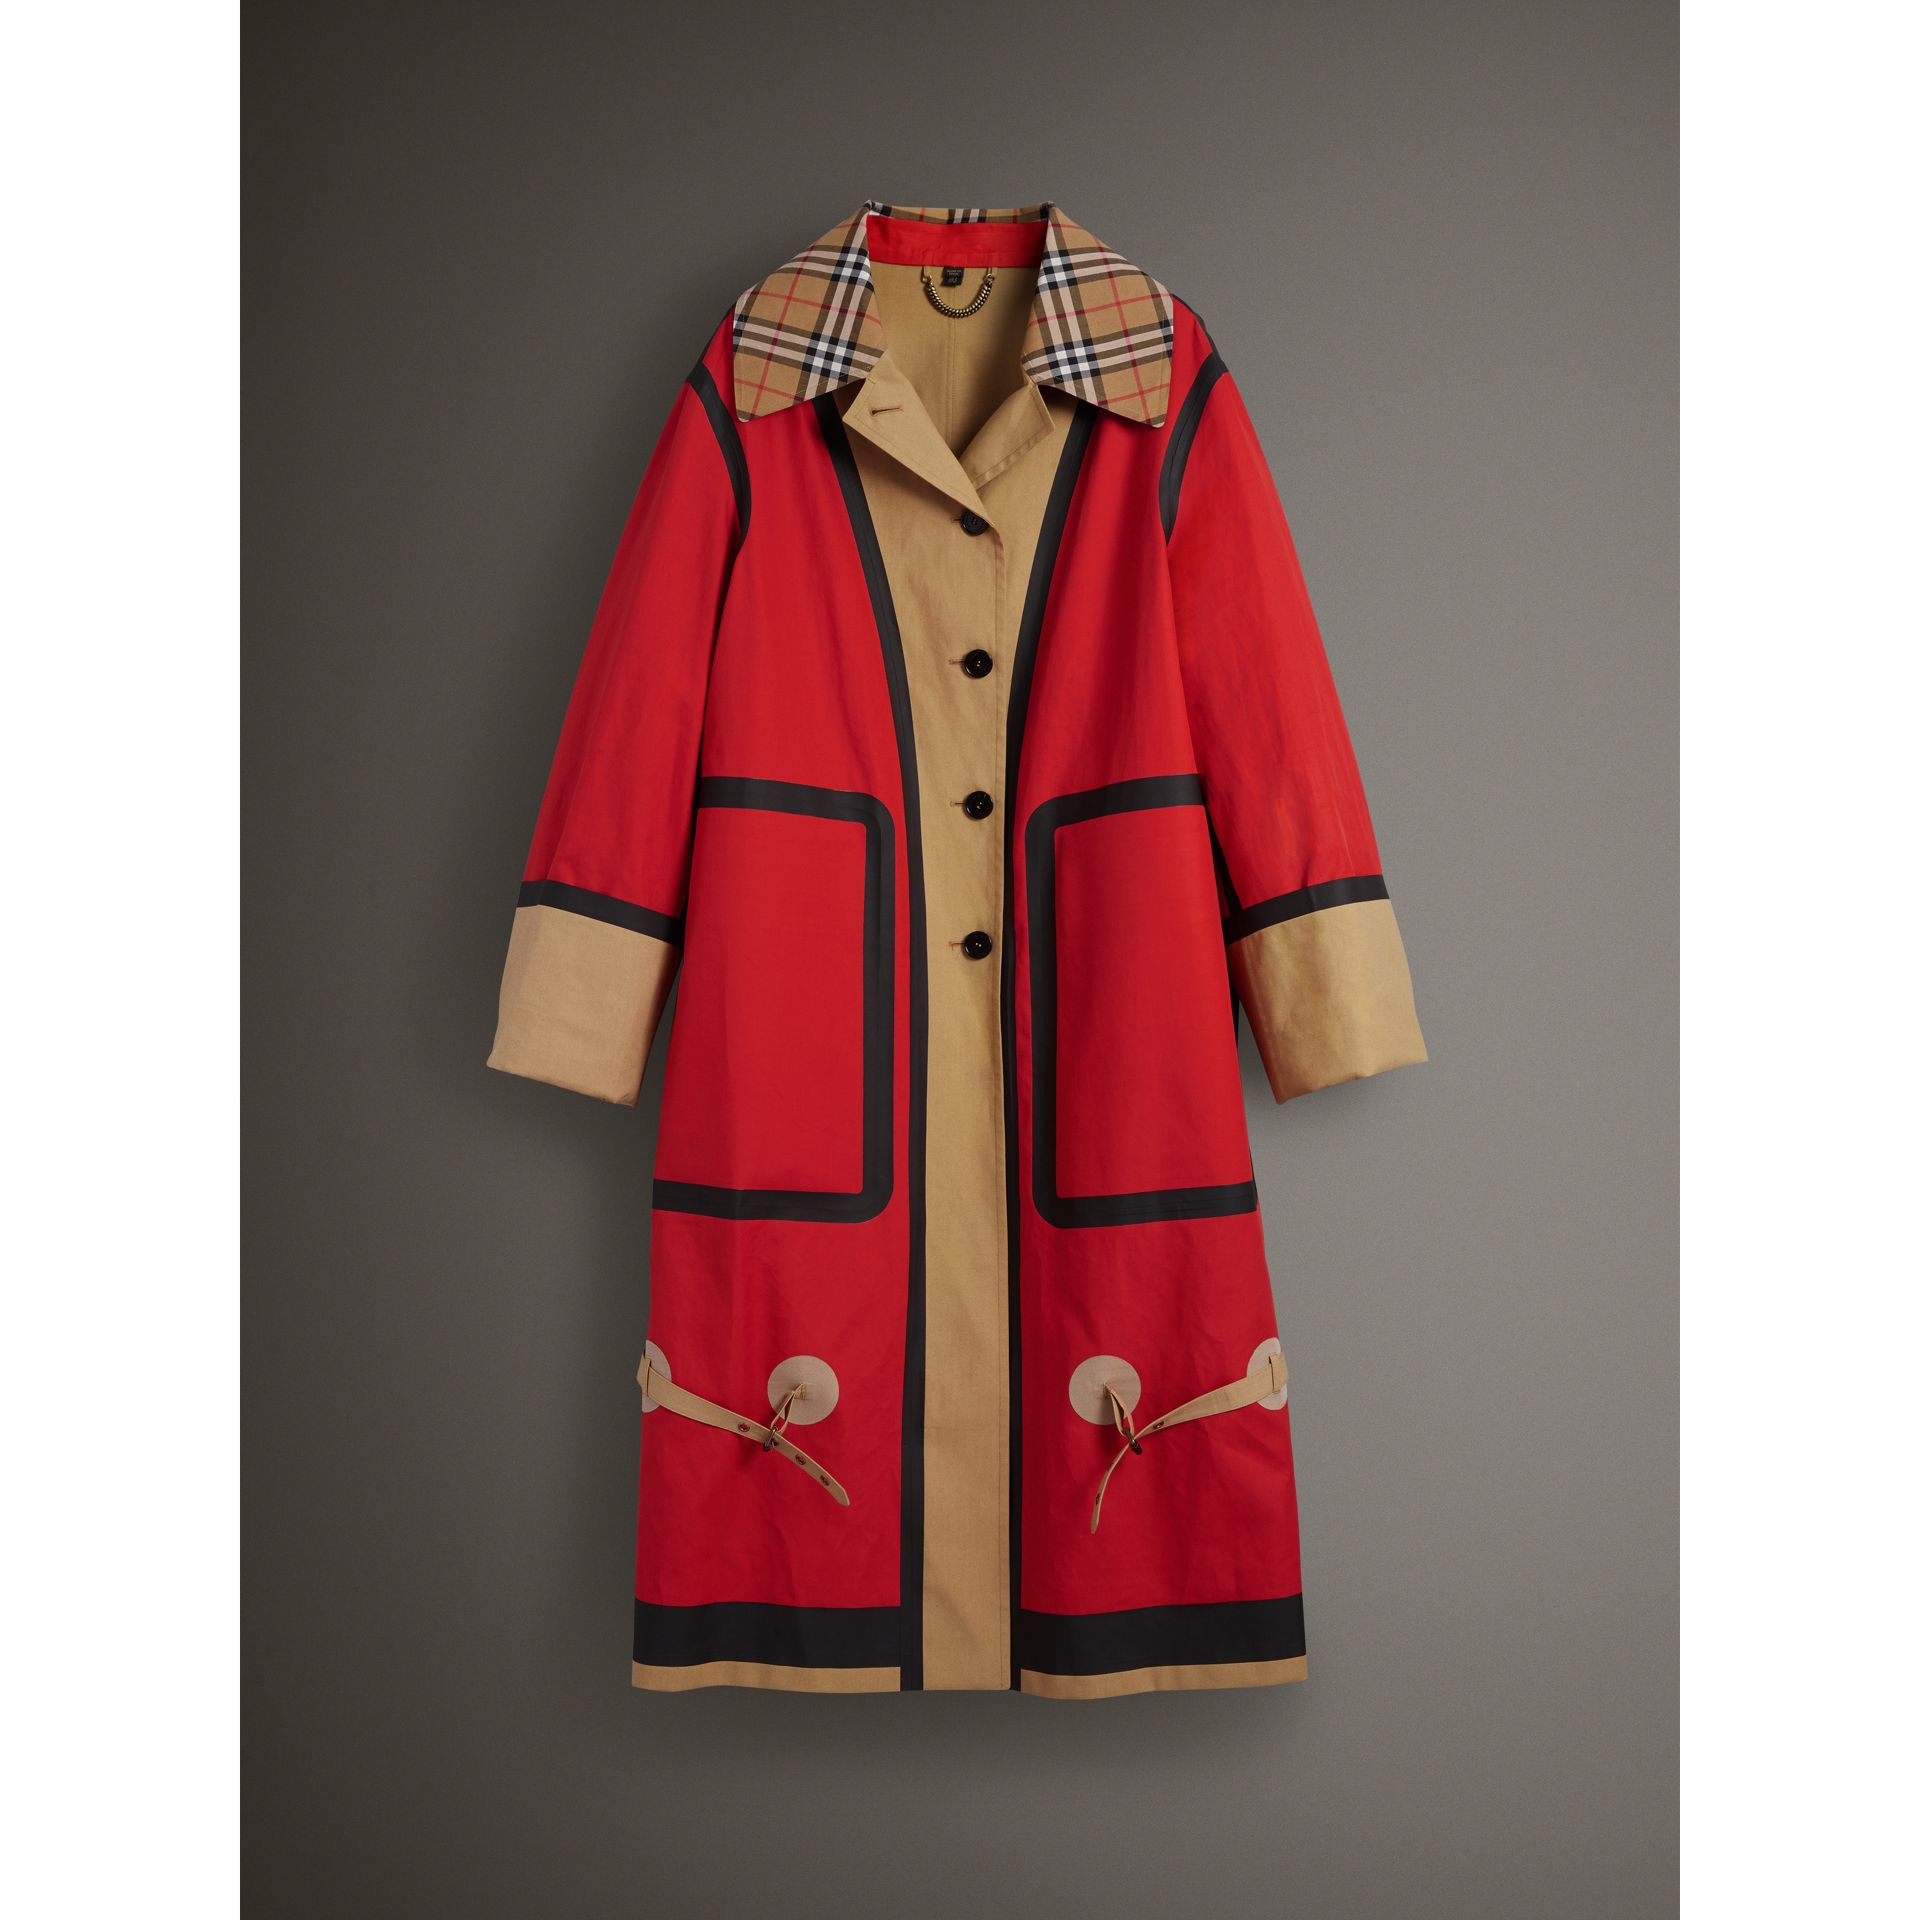 Bonded Cotton Oversized Seam-sealed Car Coat in Red/beige - Women | Burberry - gallery image 3